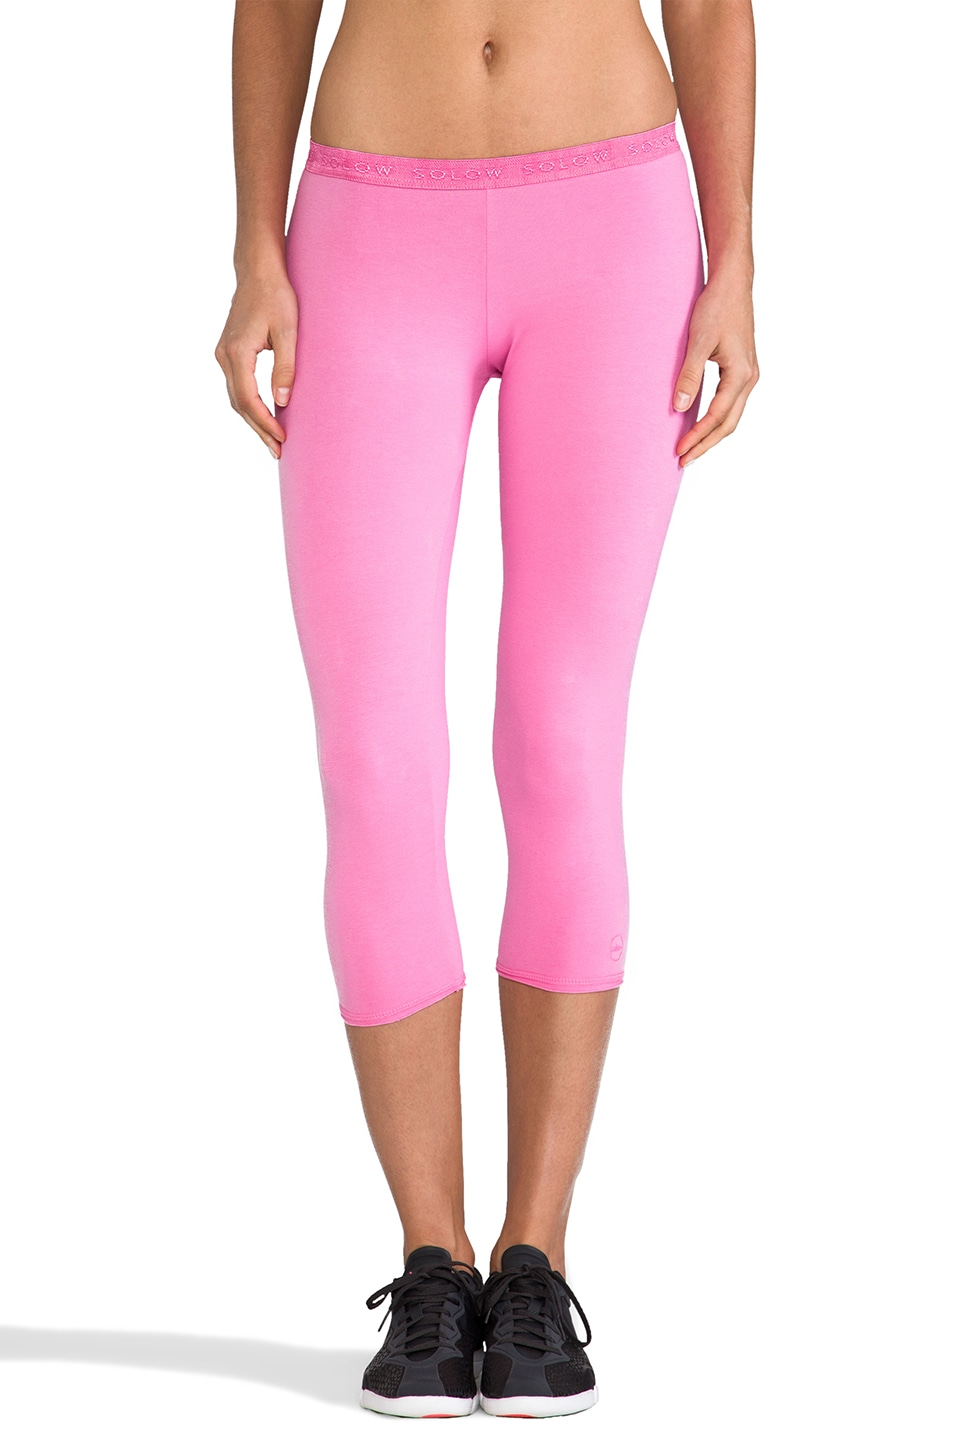 SOLOW Low Rose Crop Legging in Princess